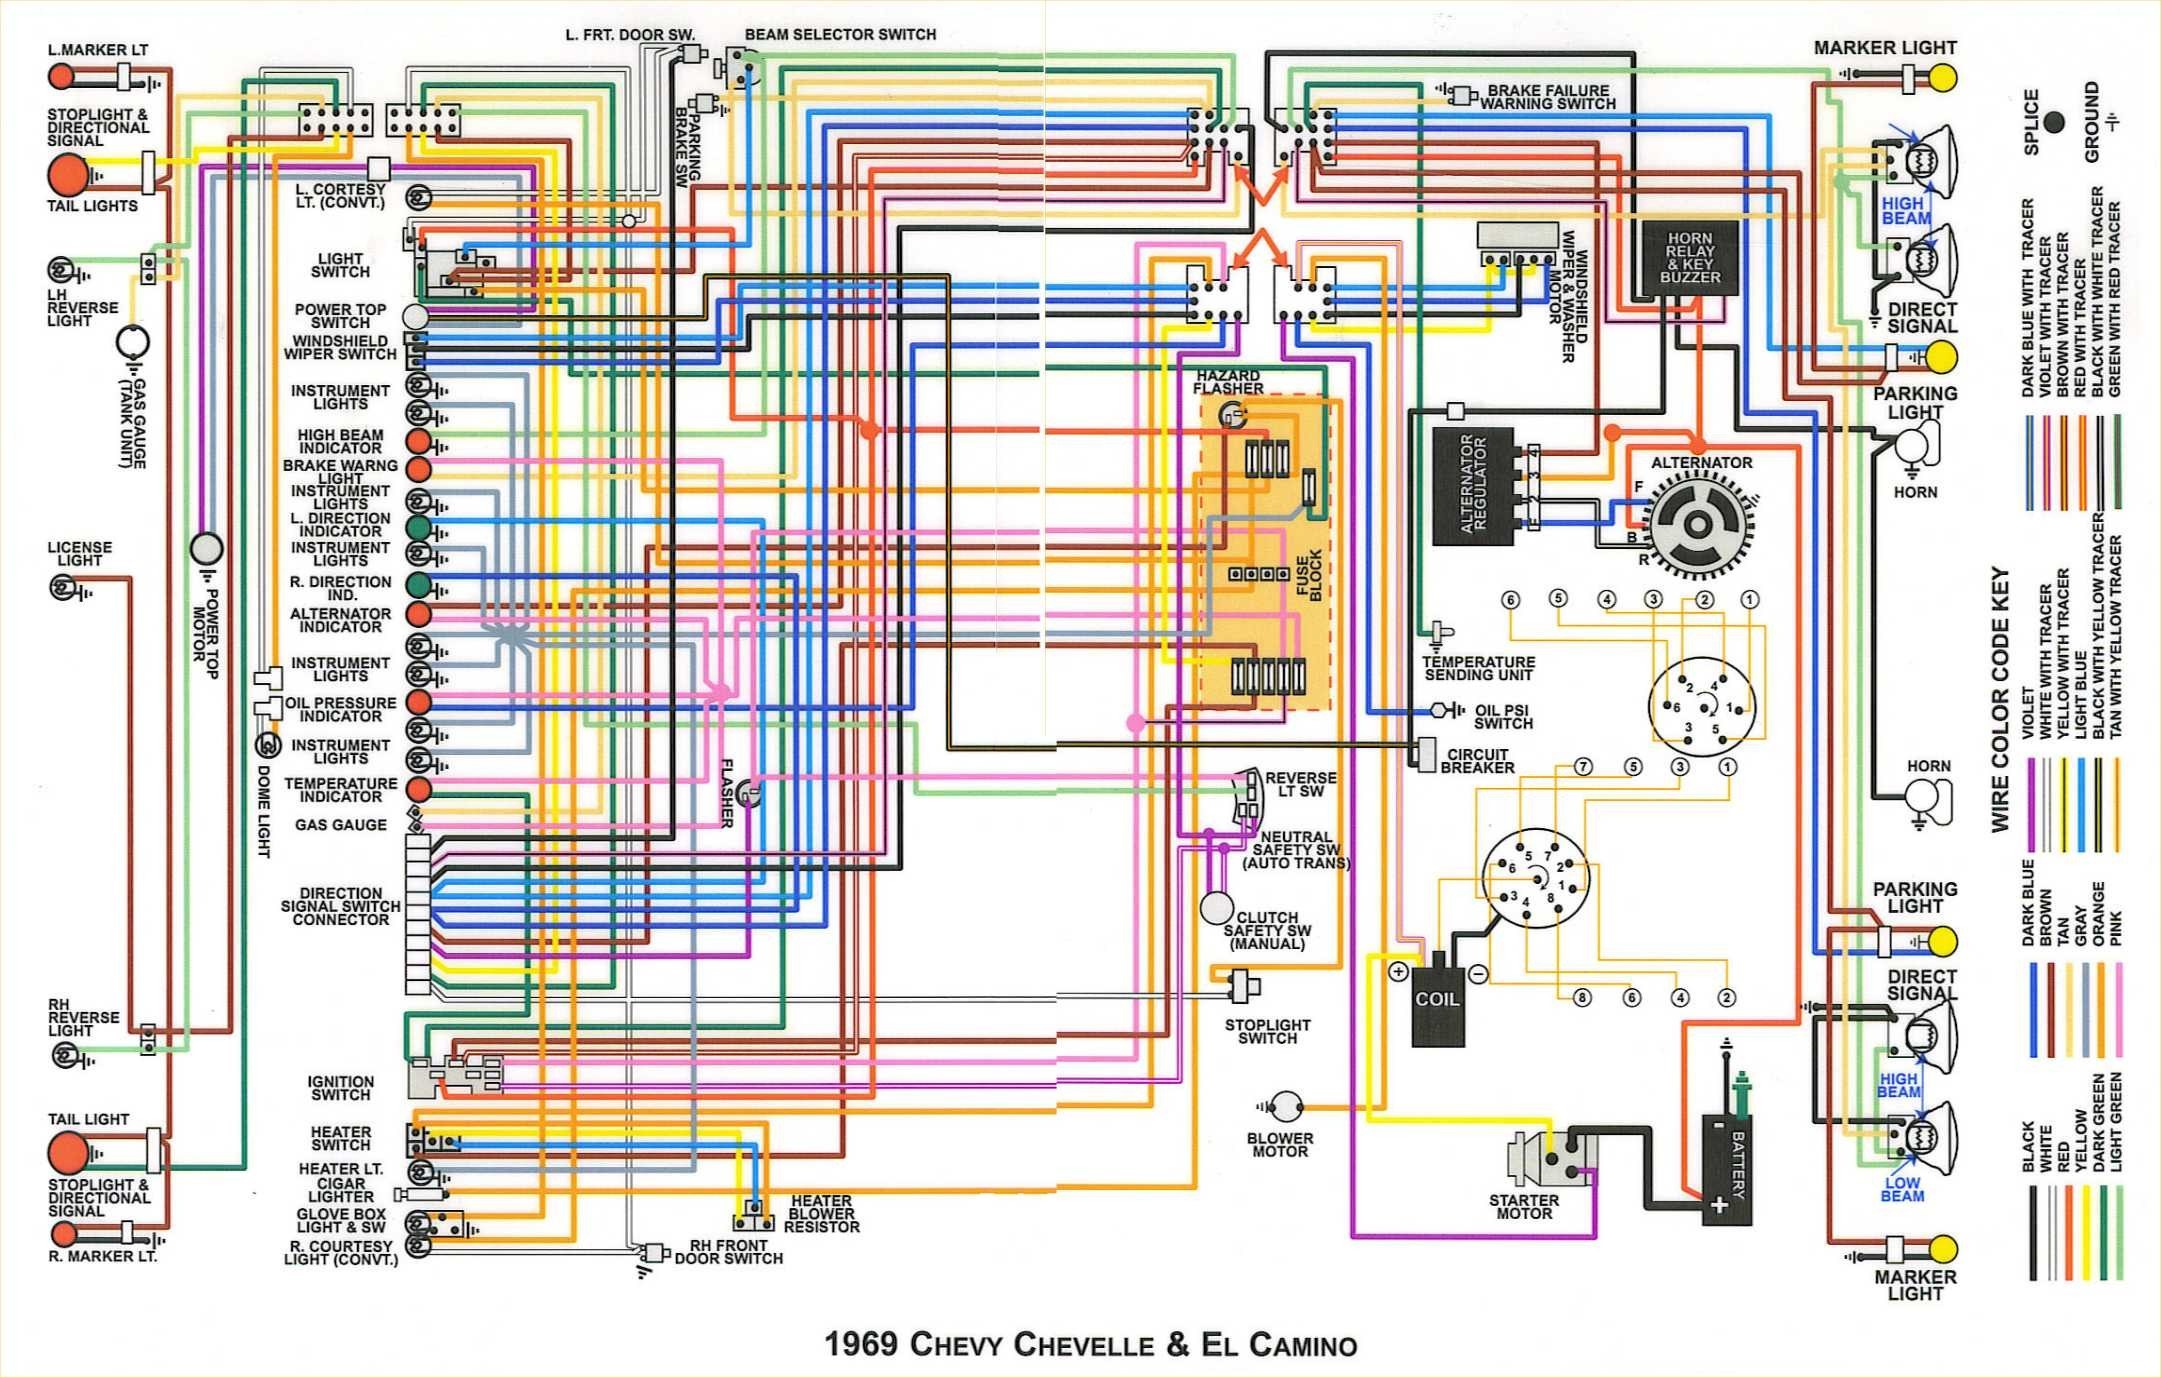 69 camaro wiring schematic for regulator ml 3050  1968 camaro dash lights wiring diagrams on 1969 camaro  1968 camaro dash lights wiring diagrams